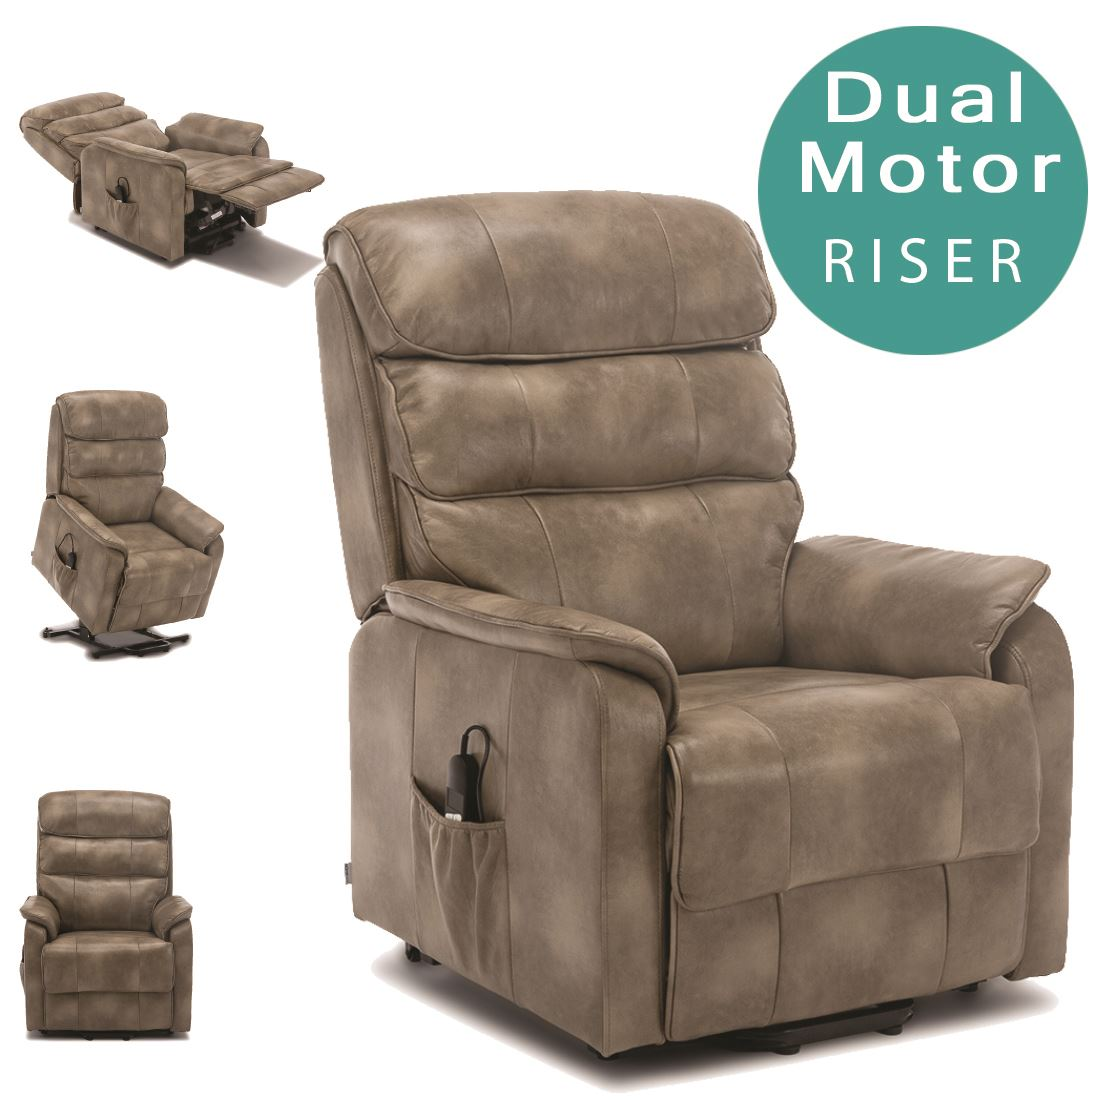 Buckingham Dual Motor Electric Riser Recliner Bond Leather